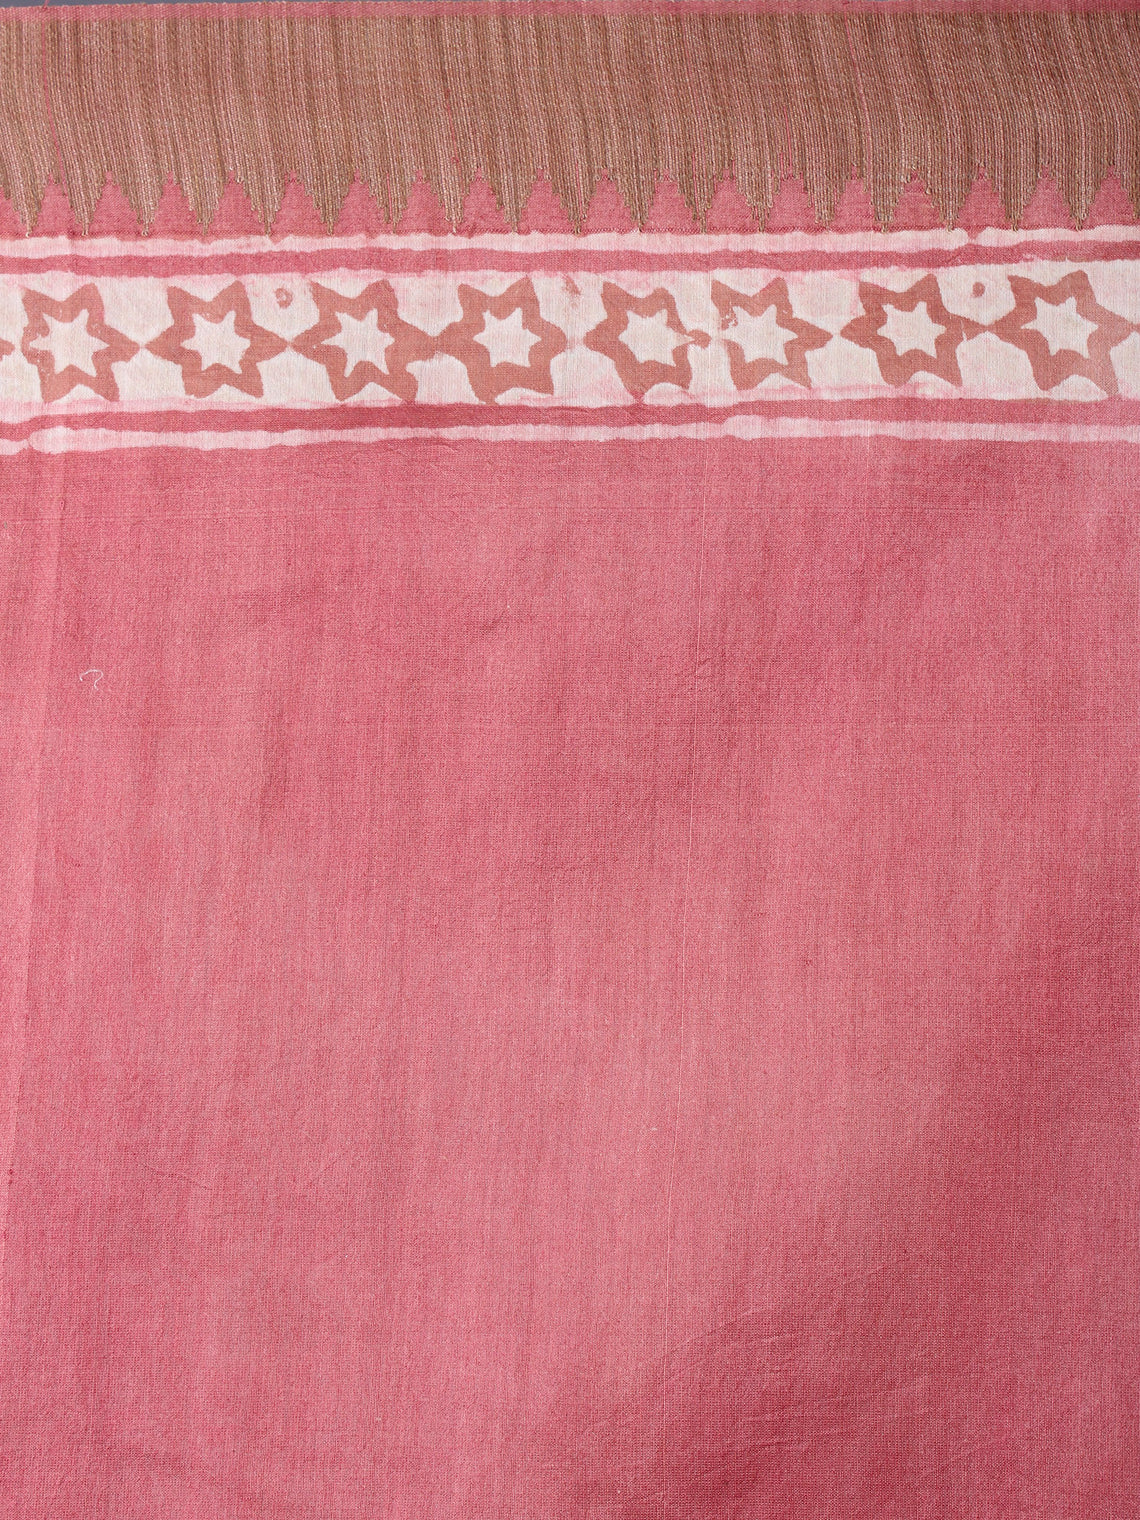 Pastel Peach Beige White Hand Block Printed in Natural Vegetable Colors Chanderi Saree With Geecha Border - S03170385